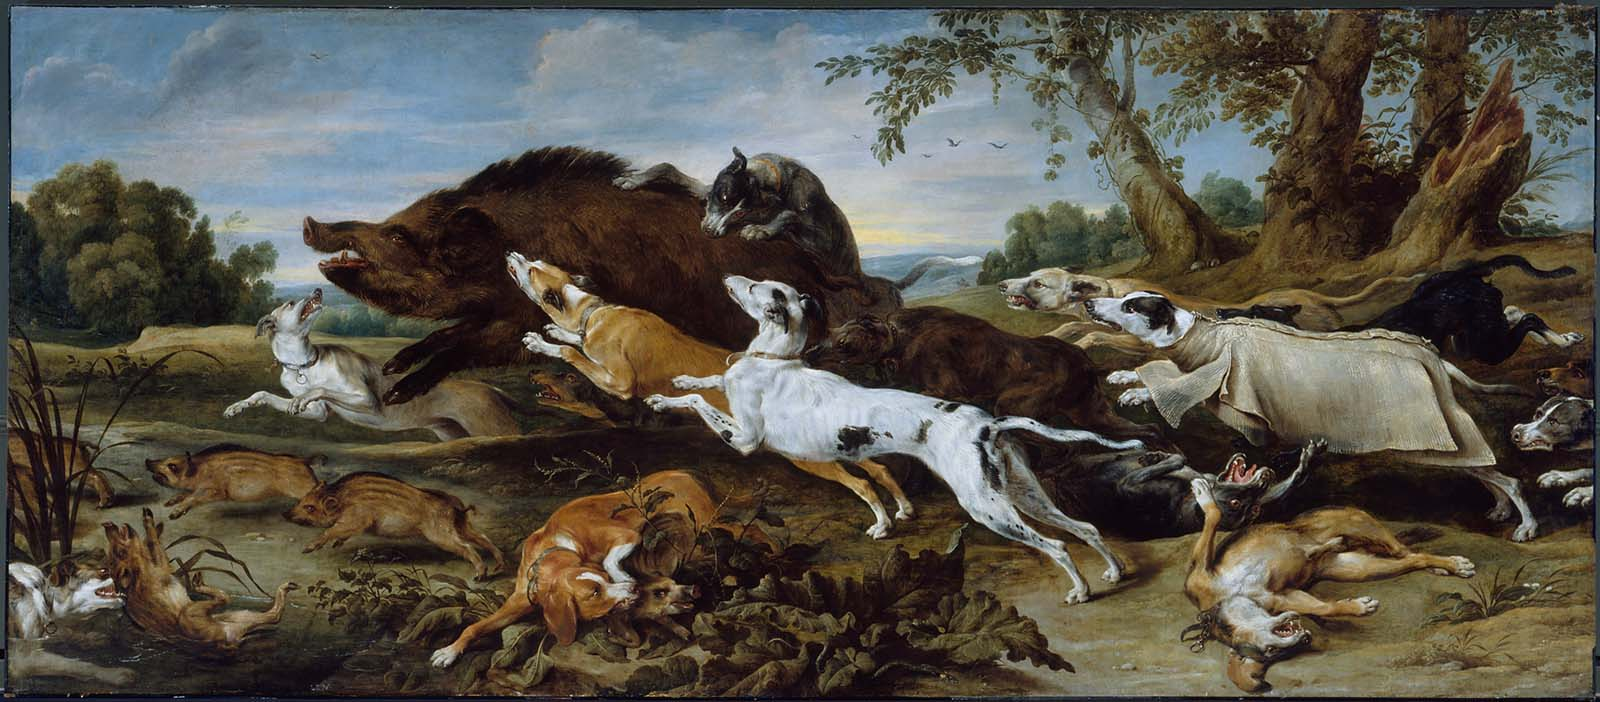 Frans Snyders' Boar Hunt - Museum of Fine Arts, Boston